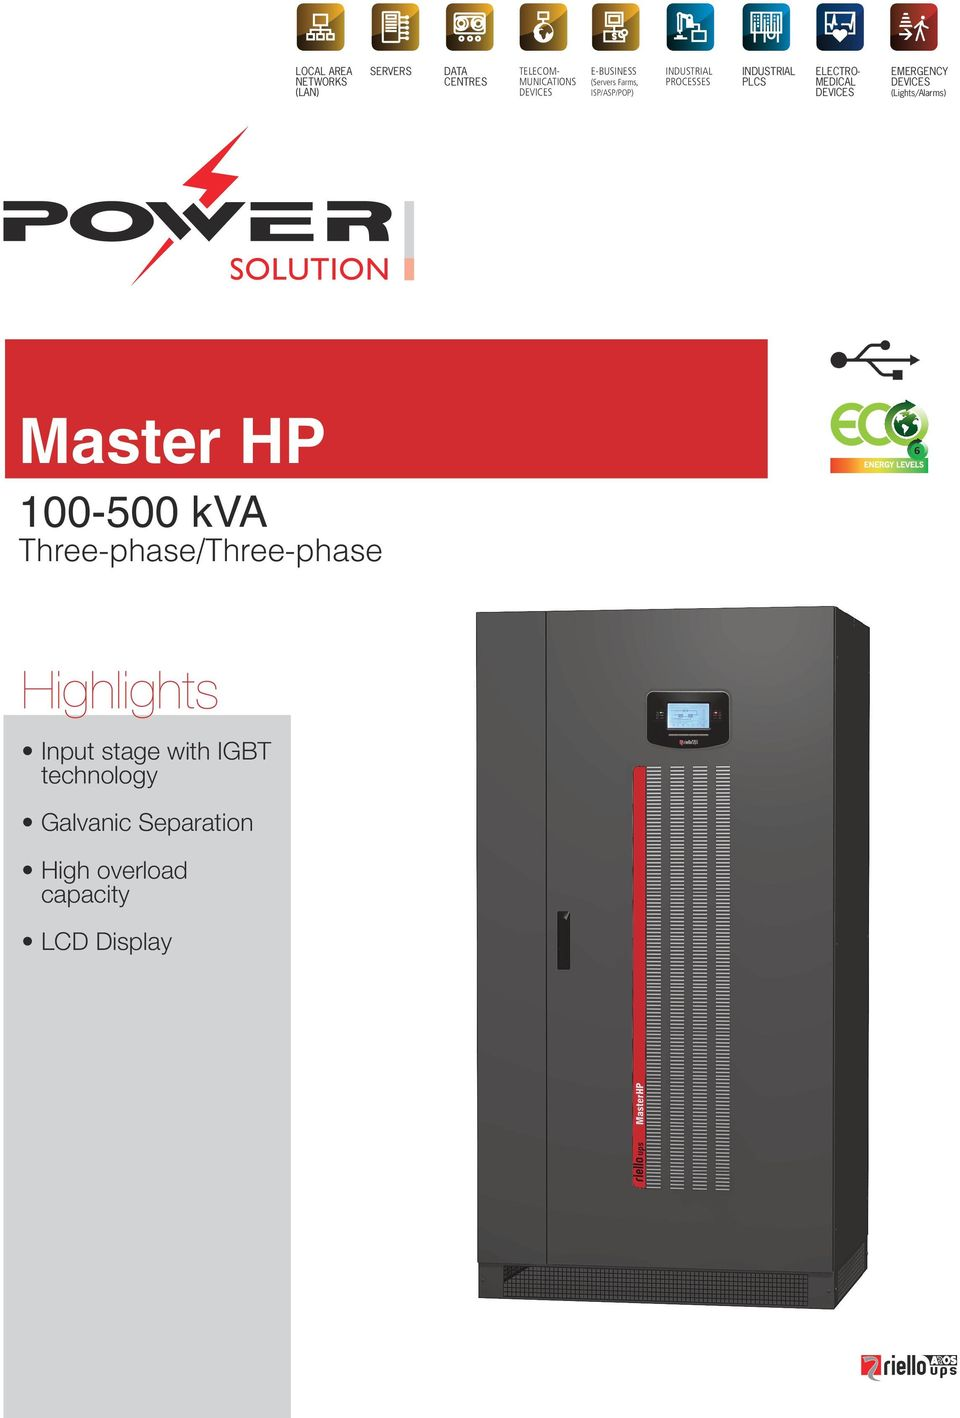 DEVICES EMERGENCY DEVICES (Lights/Alarms) Master HP 100-500 kva Three-phase/Three-phase 6